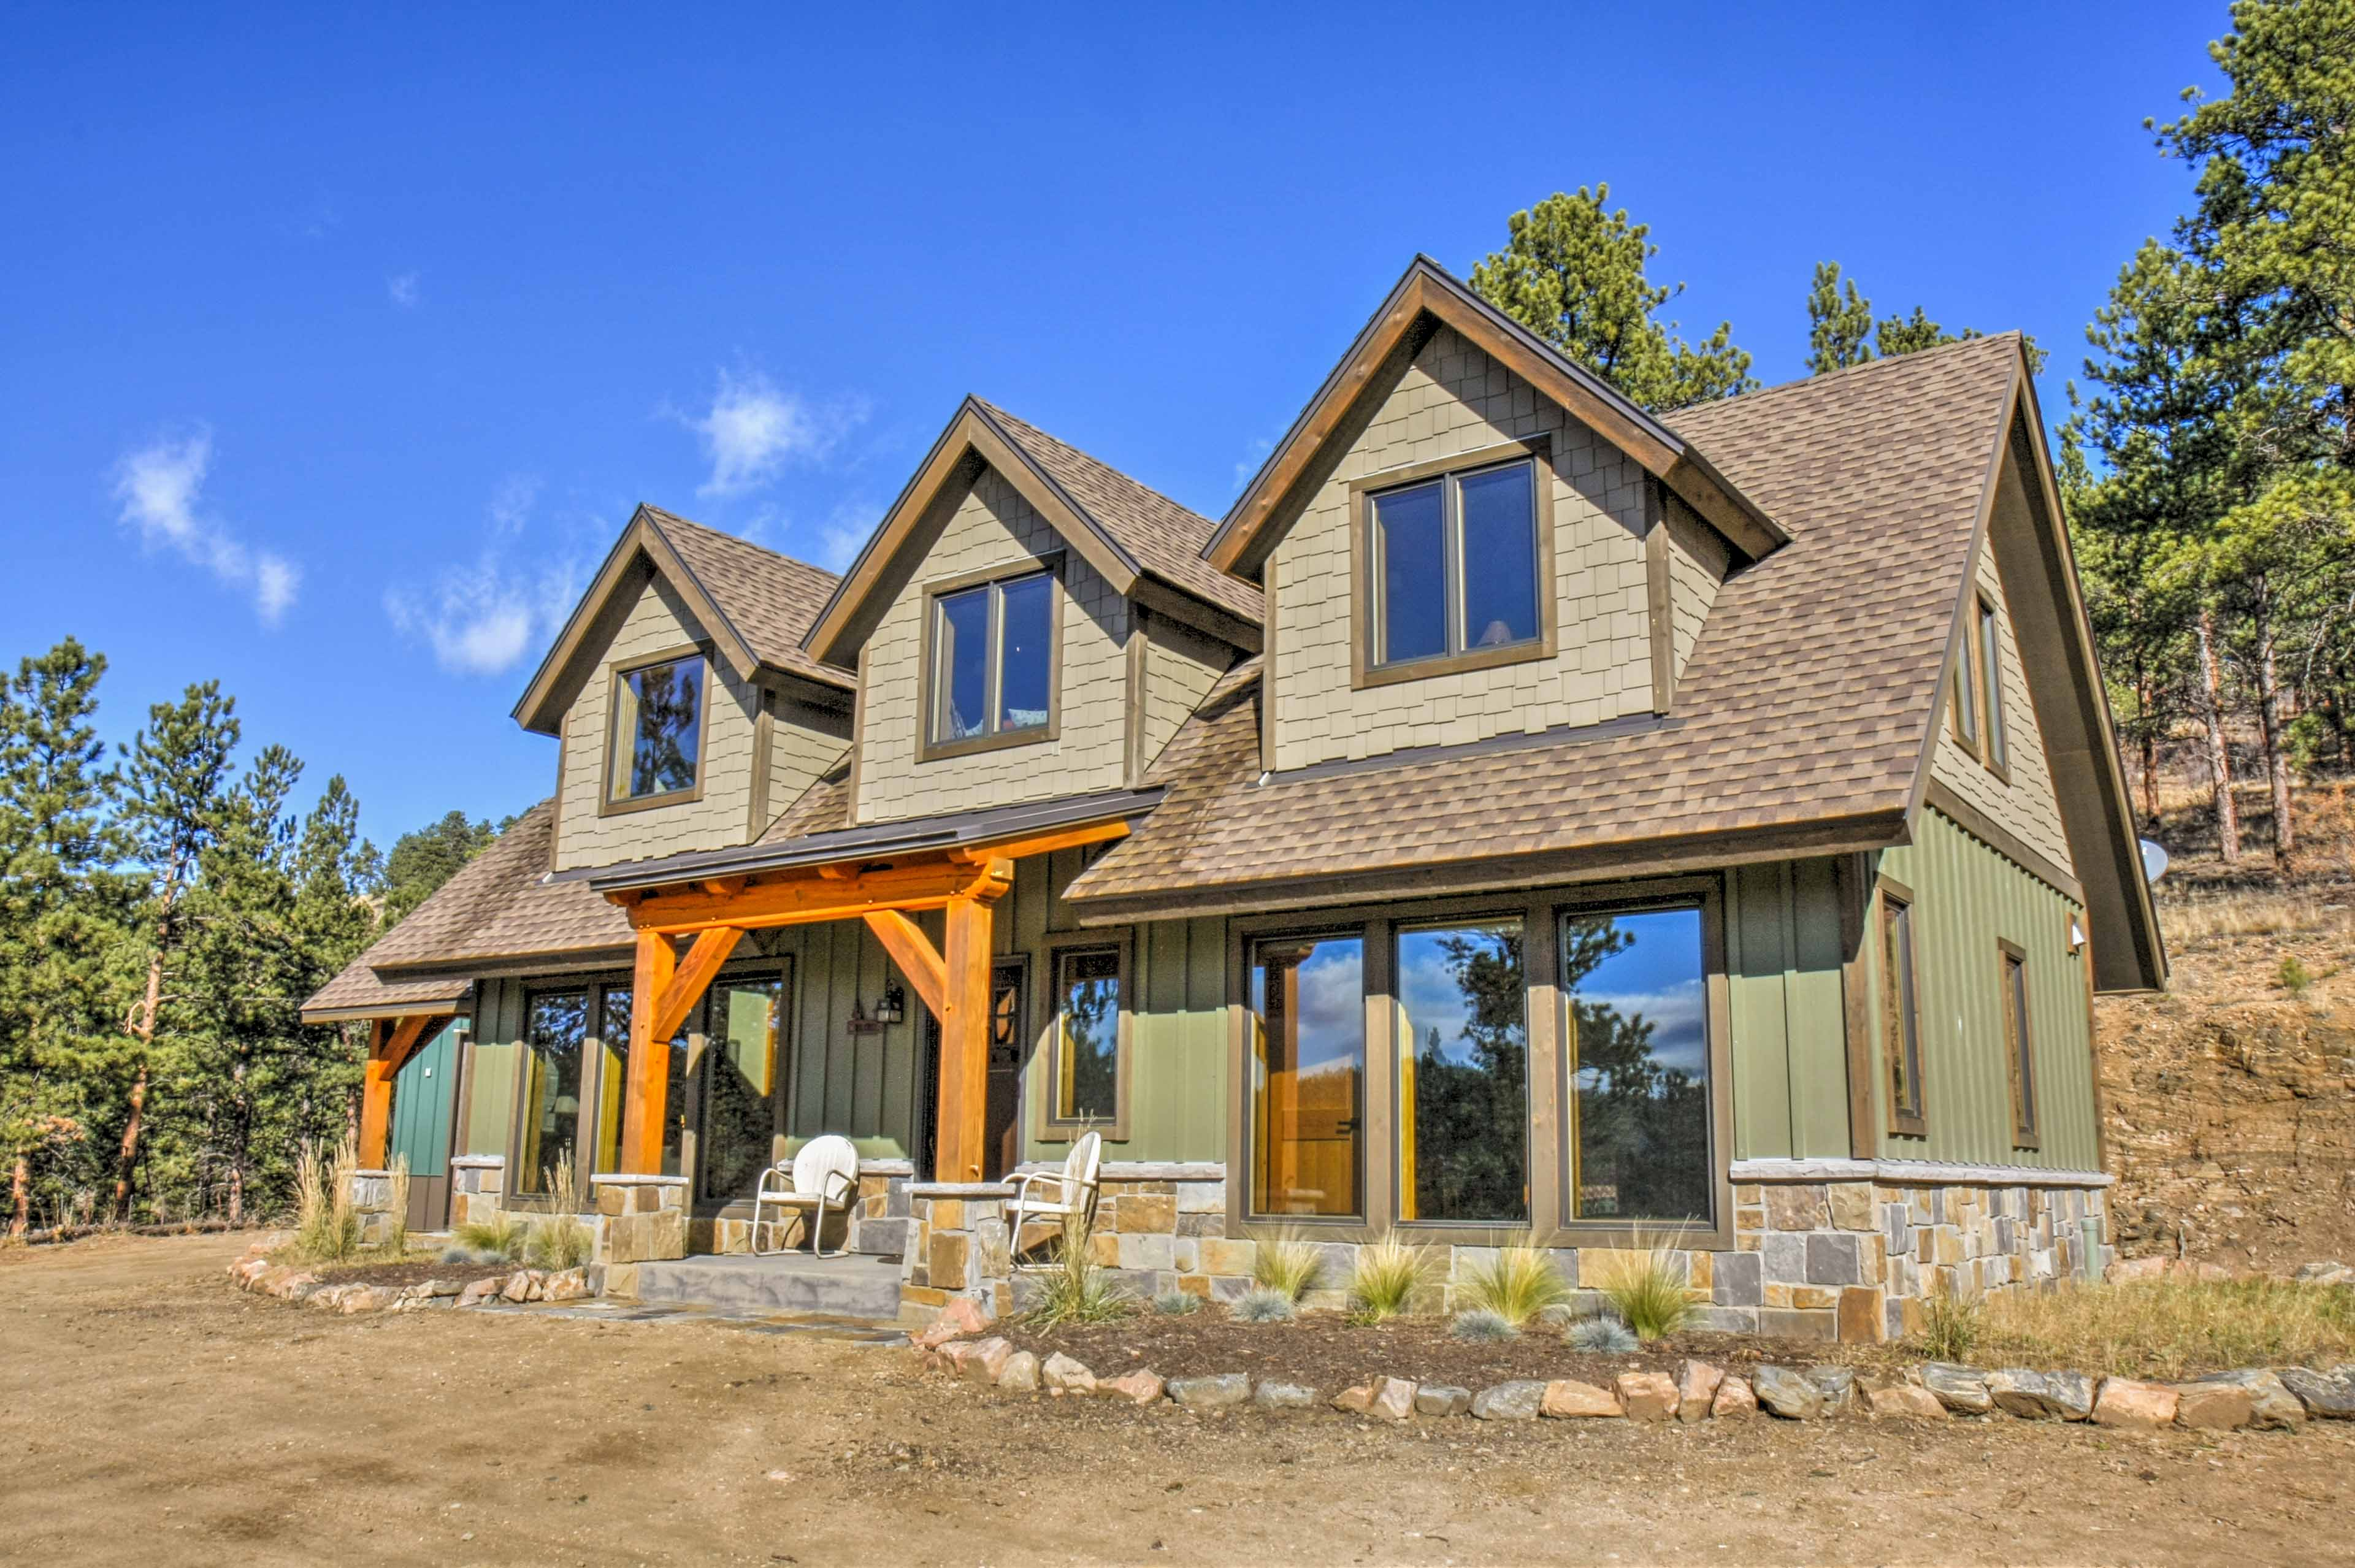 Discover a Rocky Mountain home-away-from-home at this vacation rental in Pine!